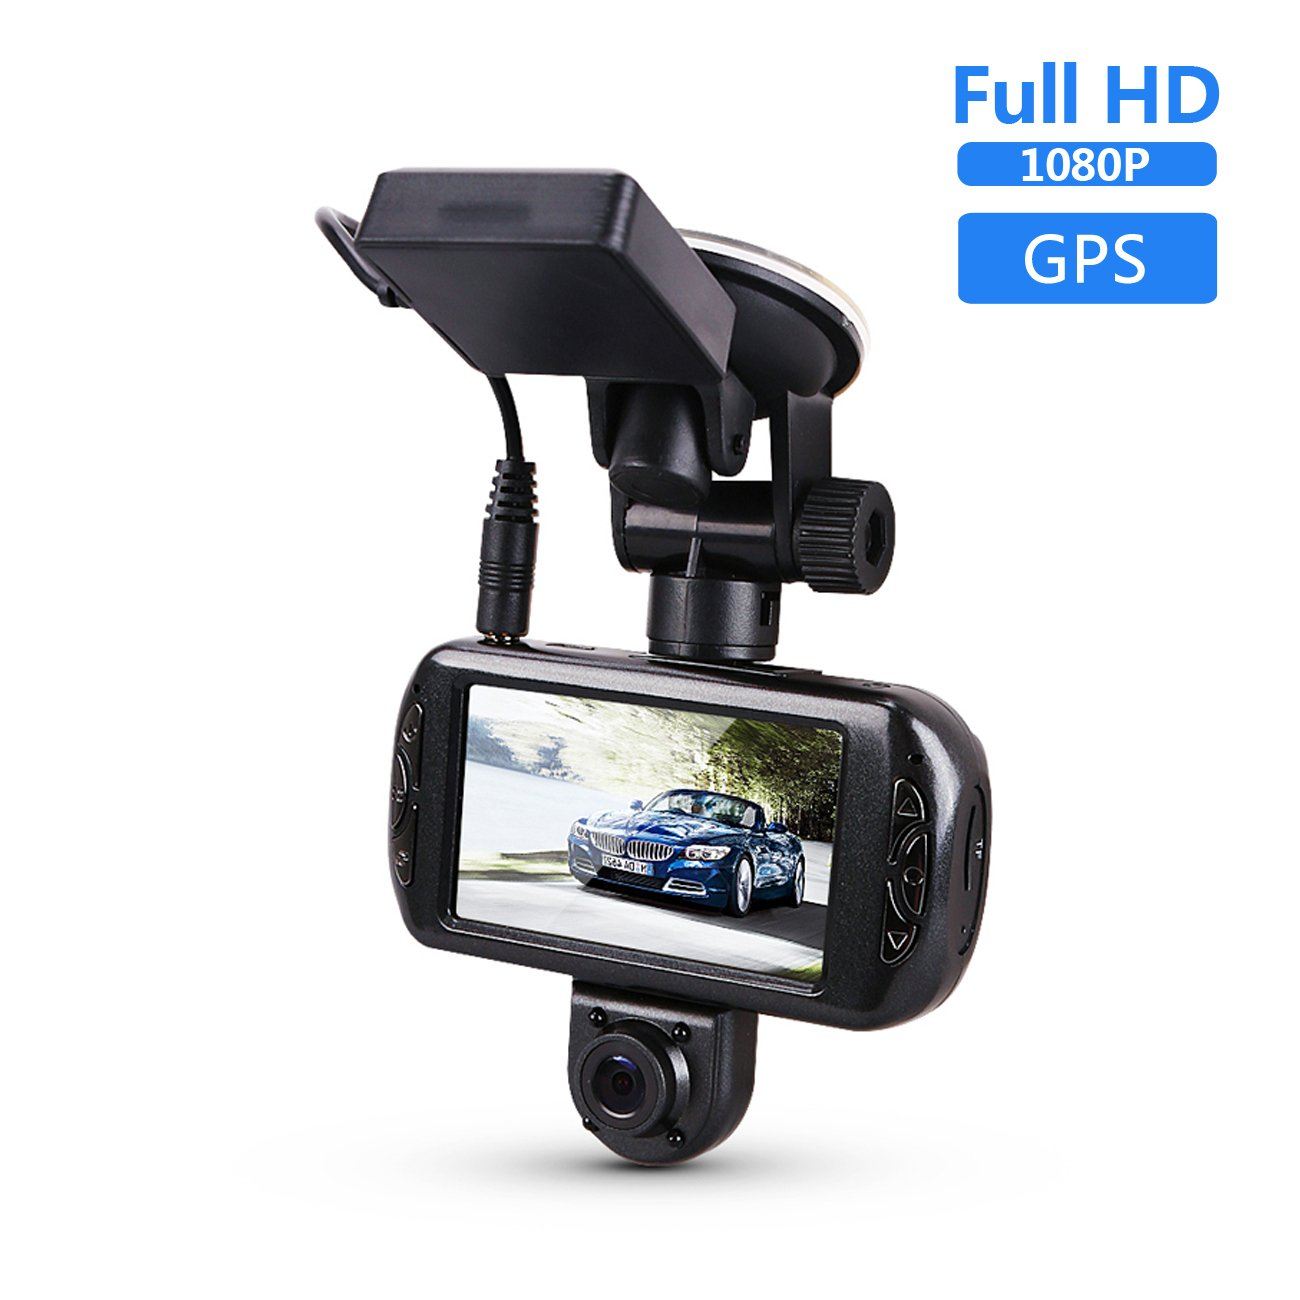 BLUEPUPILE 3.0'' Dual Dash Cam with GPS ,1080P Dashboard Camera ,170°View Angle,Portable Car Dash Camera Recorder Car DVR. Suport 64G by BLUEPUPILE